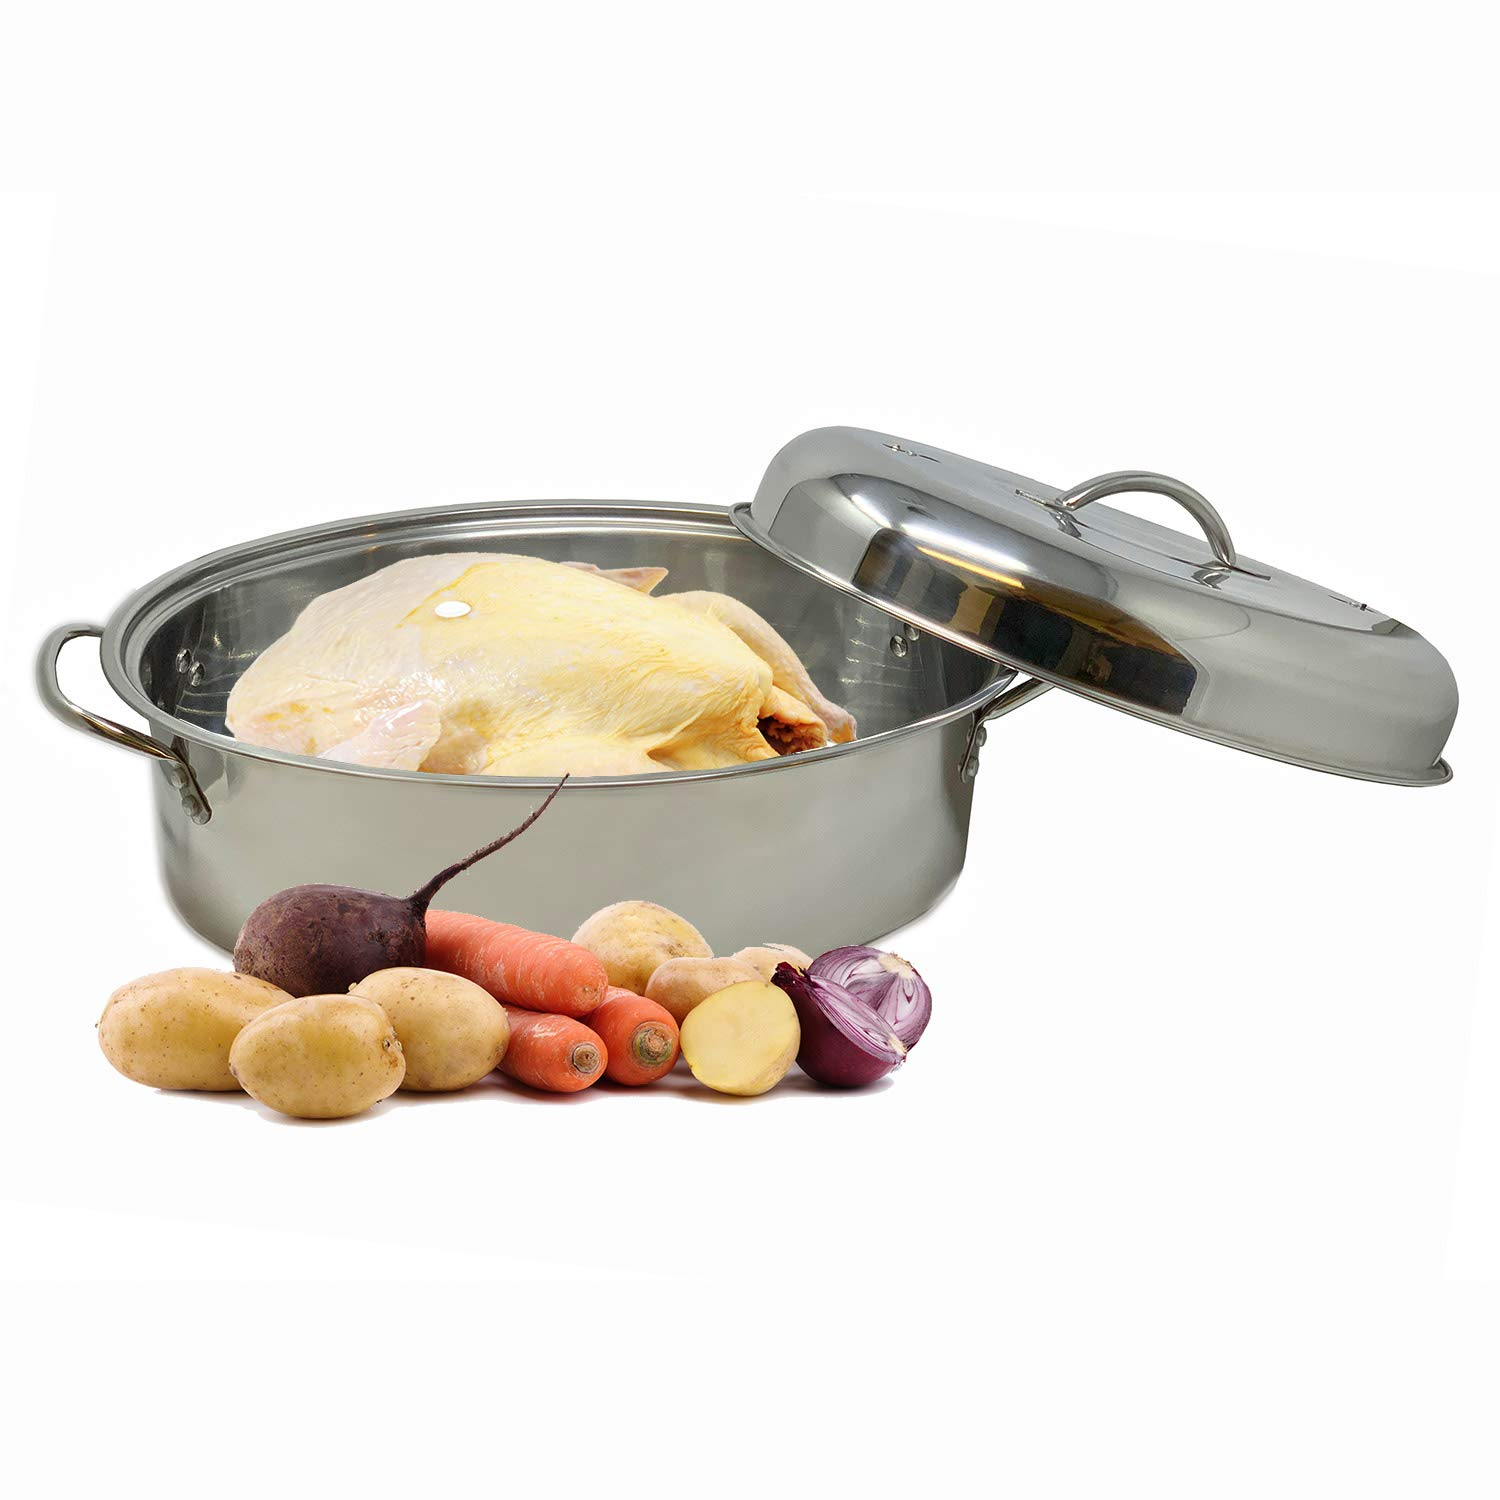 Stainless Steel Oval Lidded Roaster Pan Extra Large & Lightweight | With Induction Lid & Wire Rack | Multi-Purpose Oven Cookware High Dome | Meat Joints Chicken Vegetables 9.5 Quart Capacity by LavoHome (Image #4)